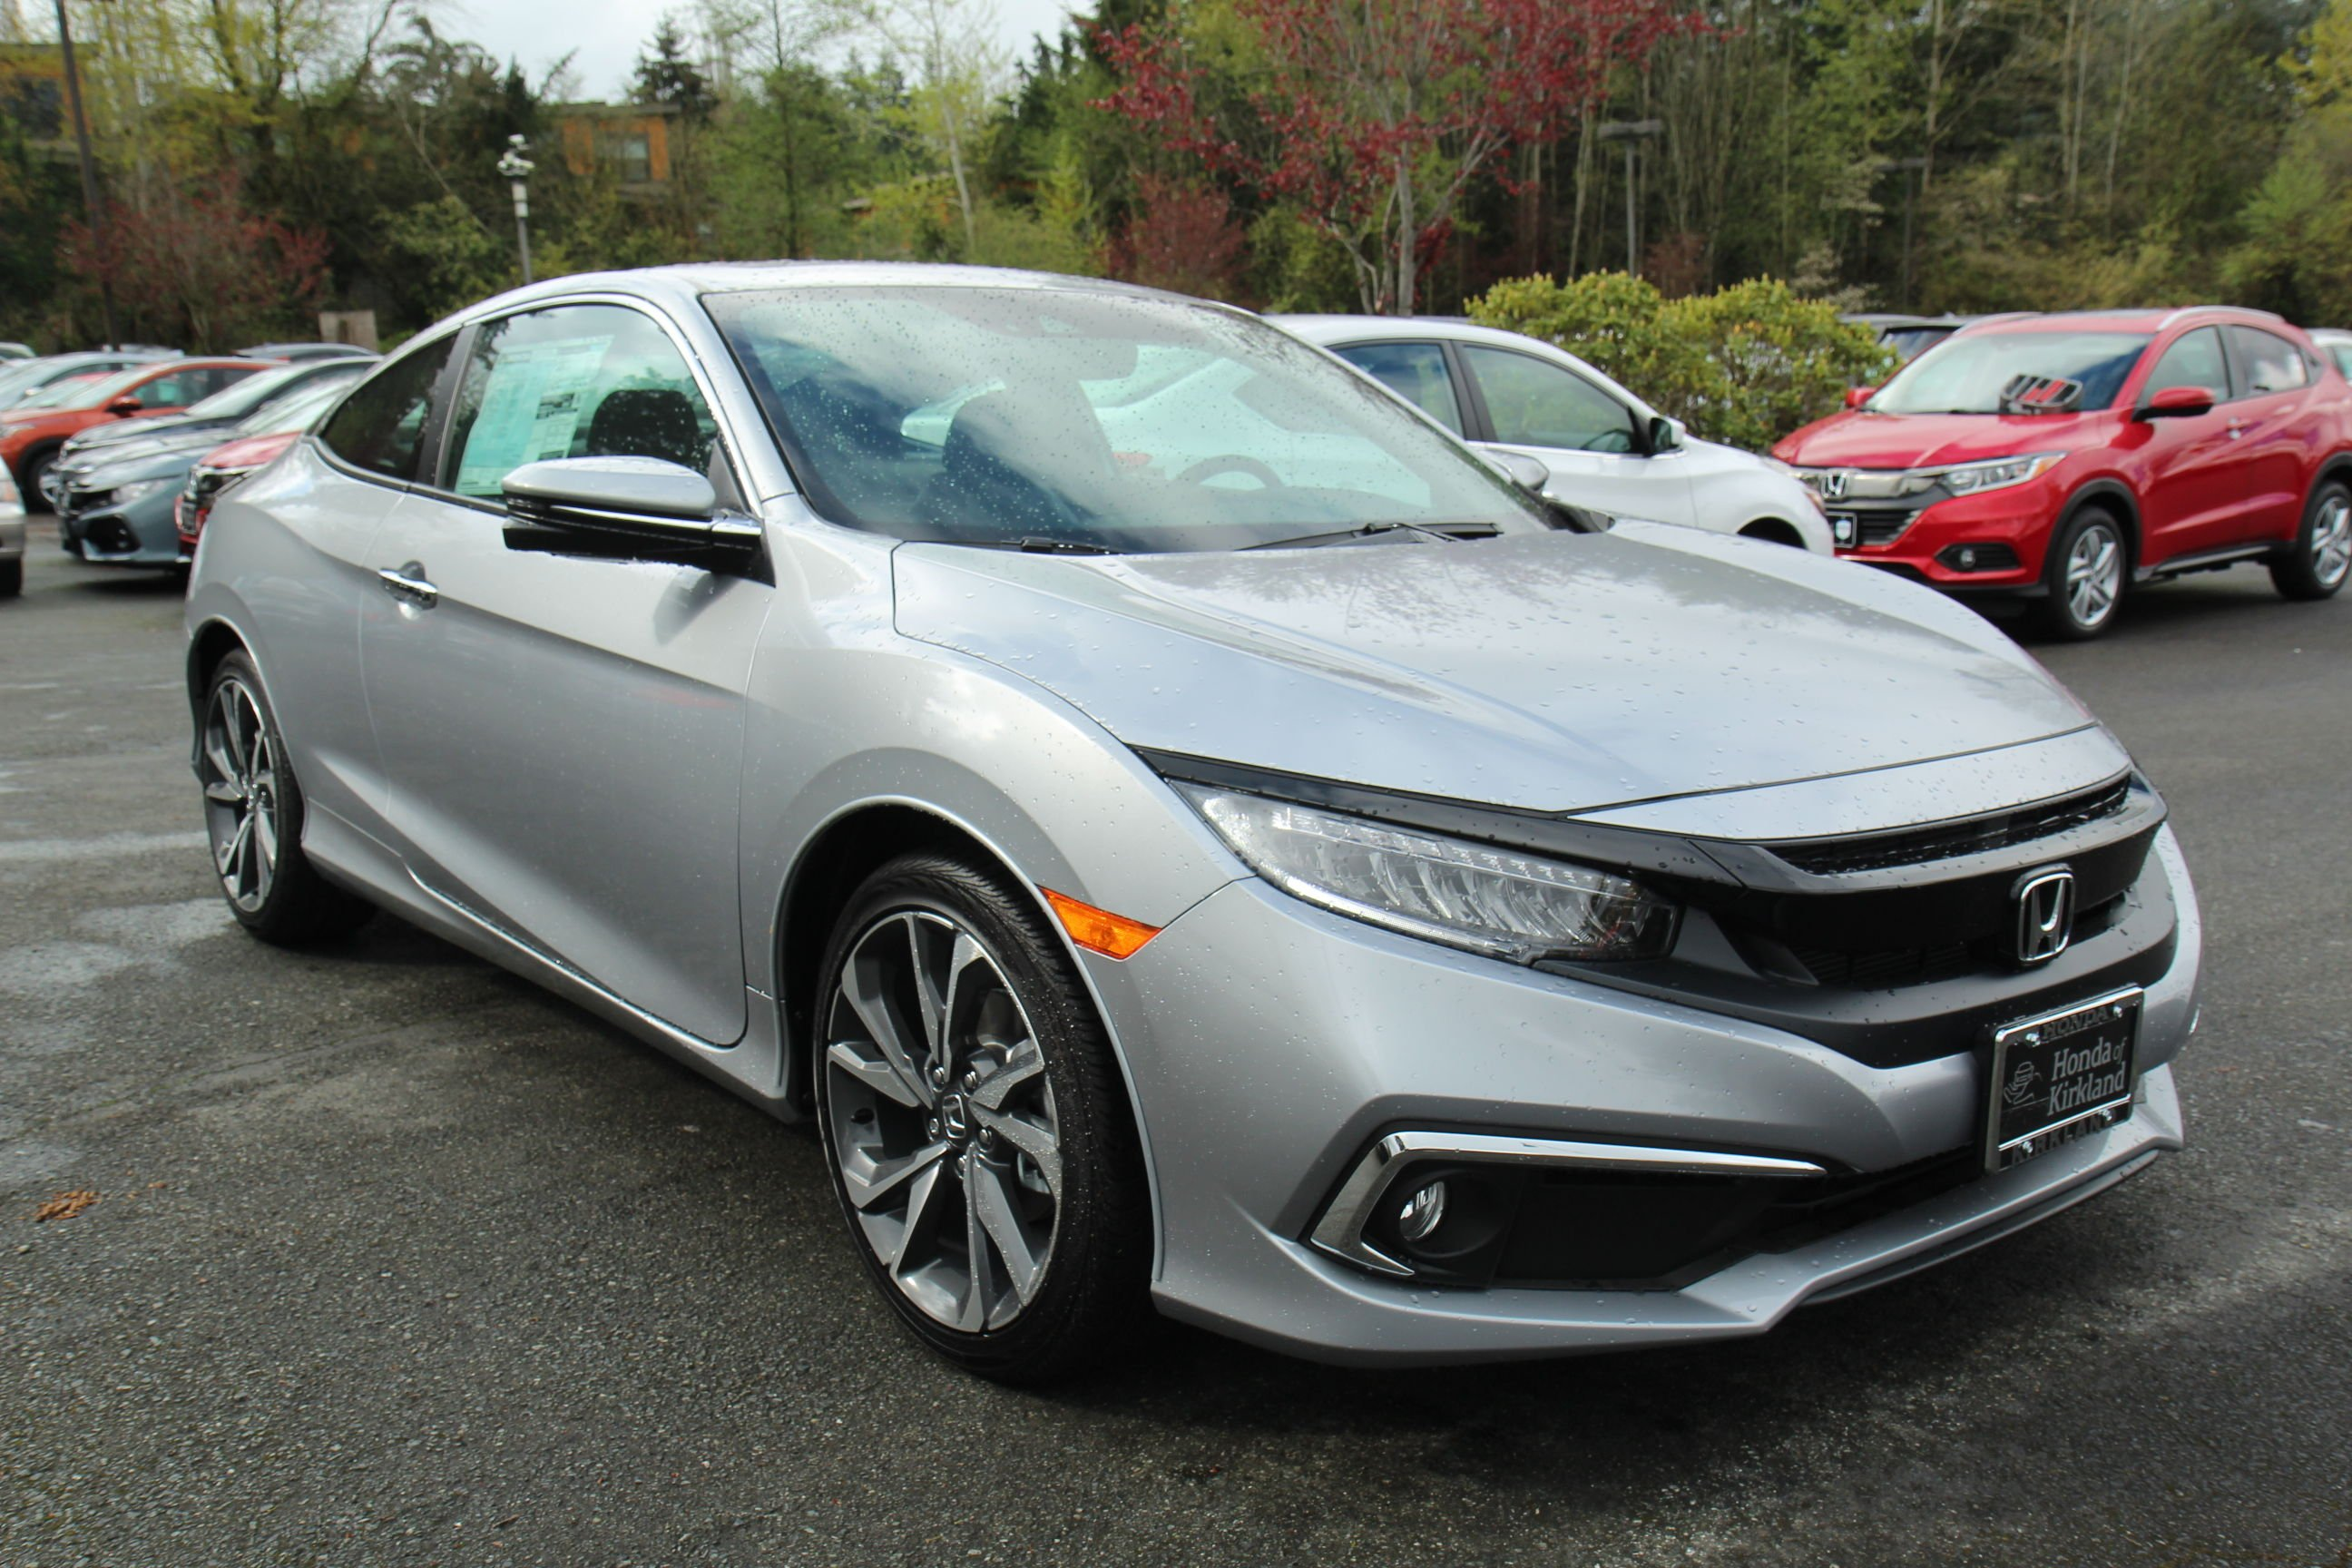 New 2019 Honda Civic Coupe Touring 2dr Car in Kirkland ...